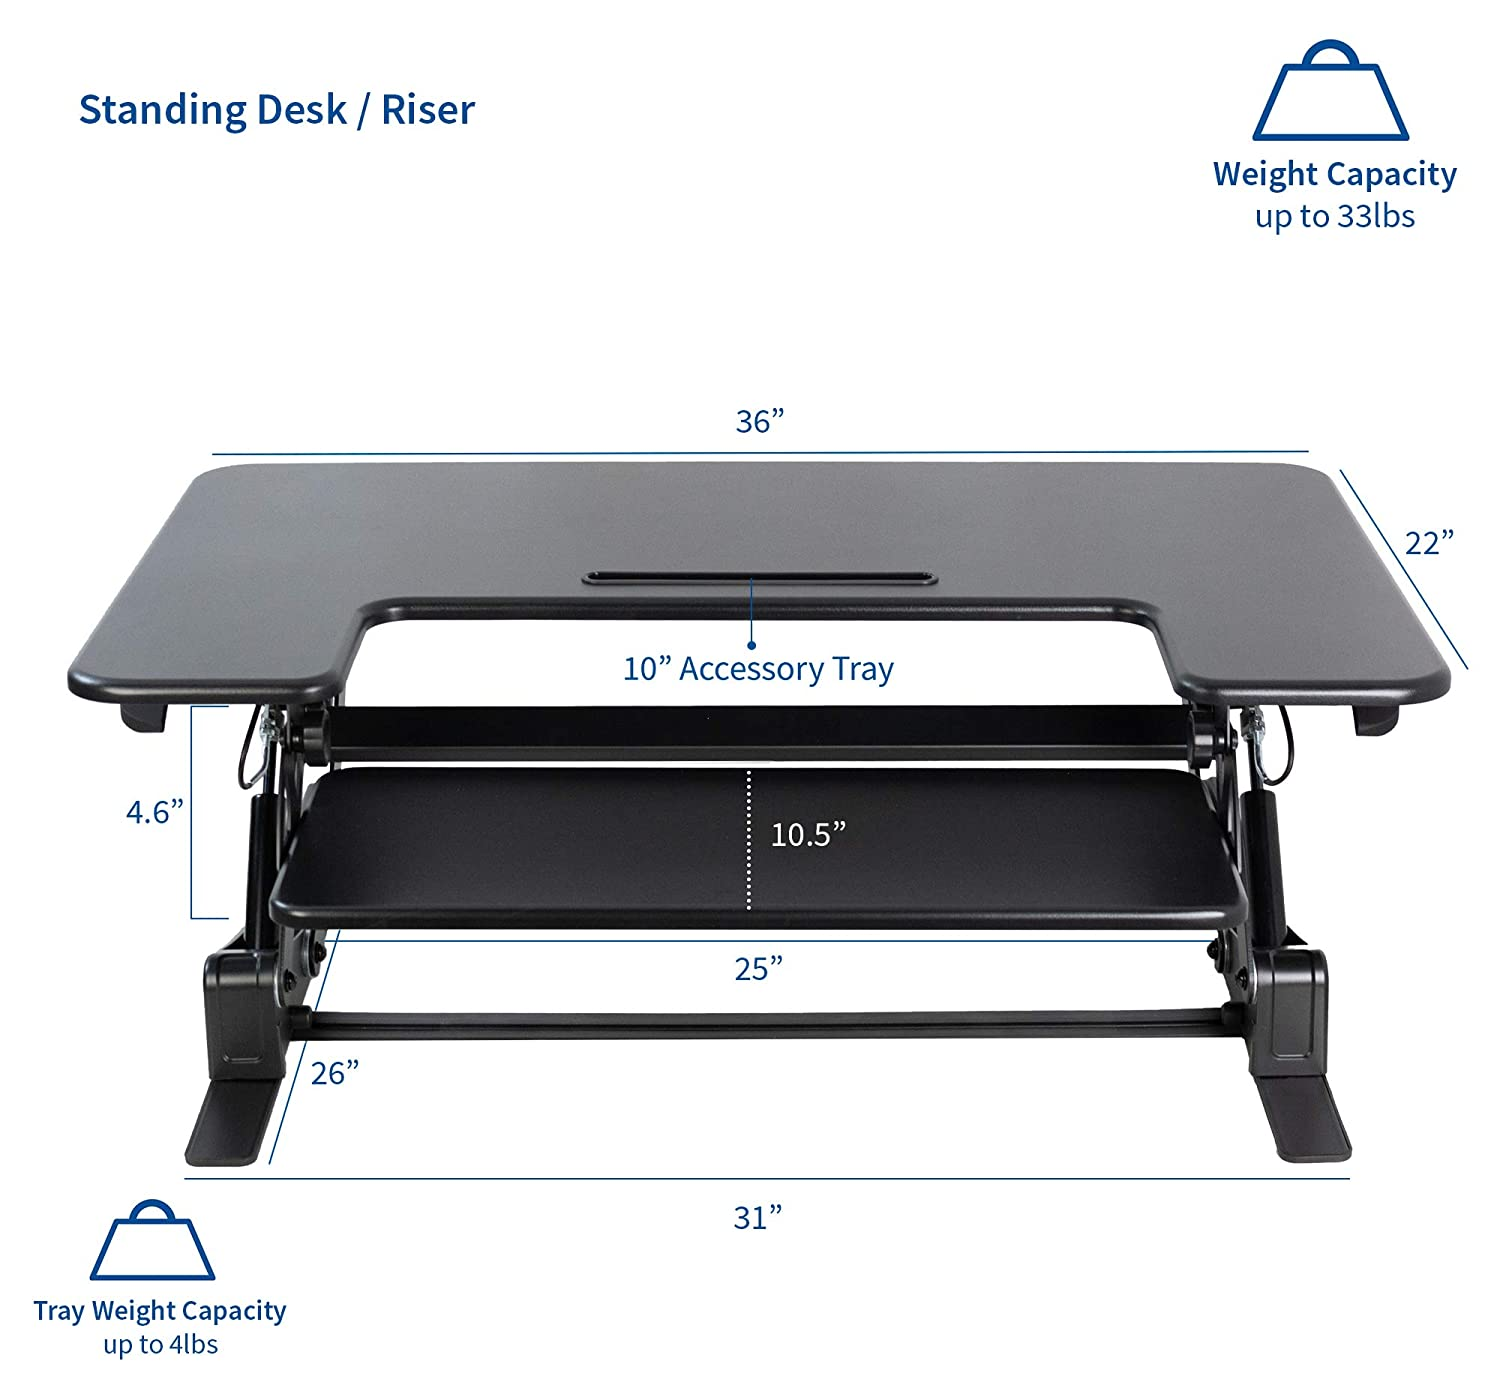 VIVO Black Height Adjustable 36 Stand up Desk Converter Quick Sit to Stand Tabletop Dual Monitor Riser DESK-V000V